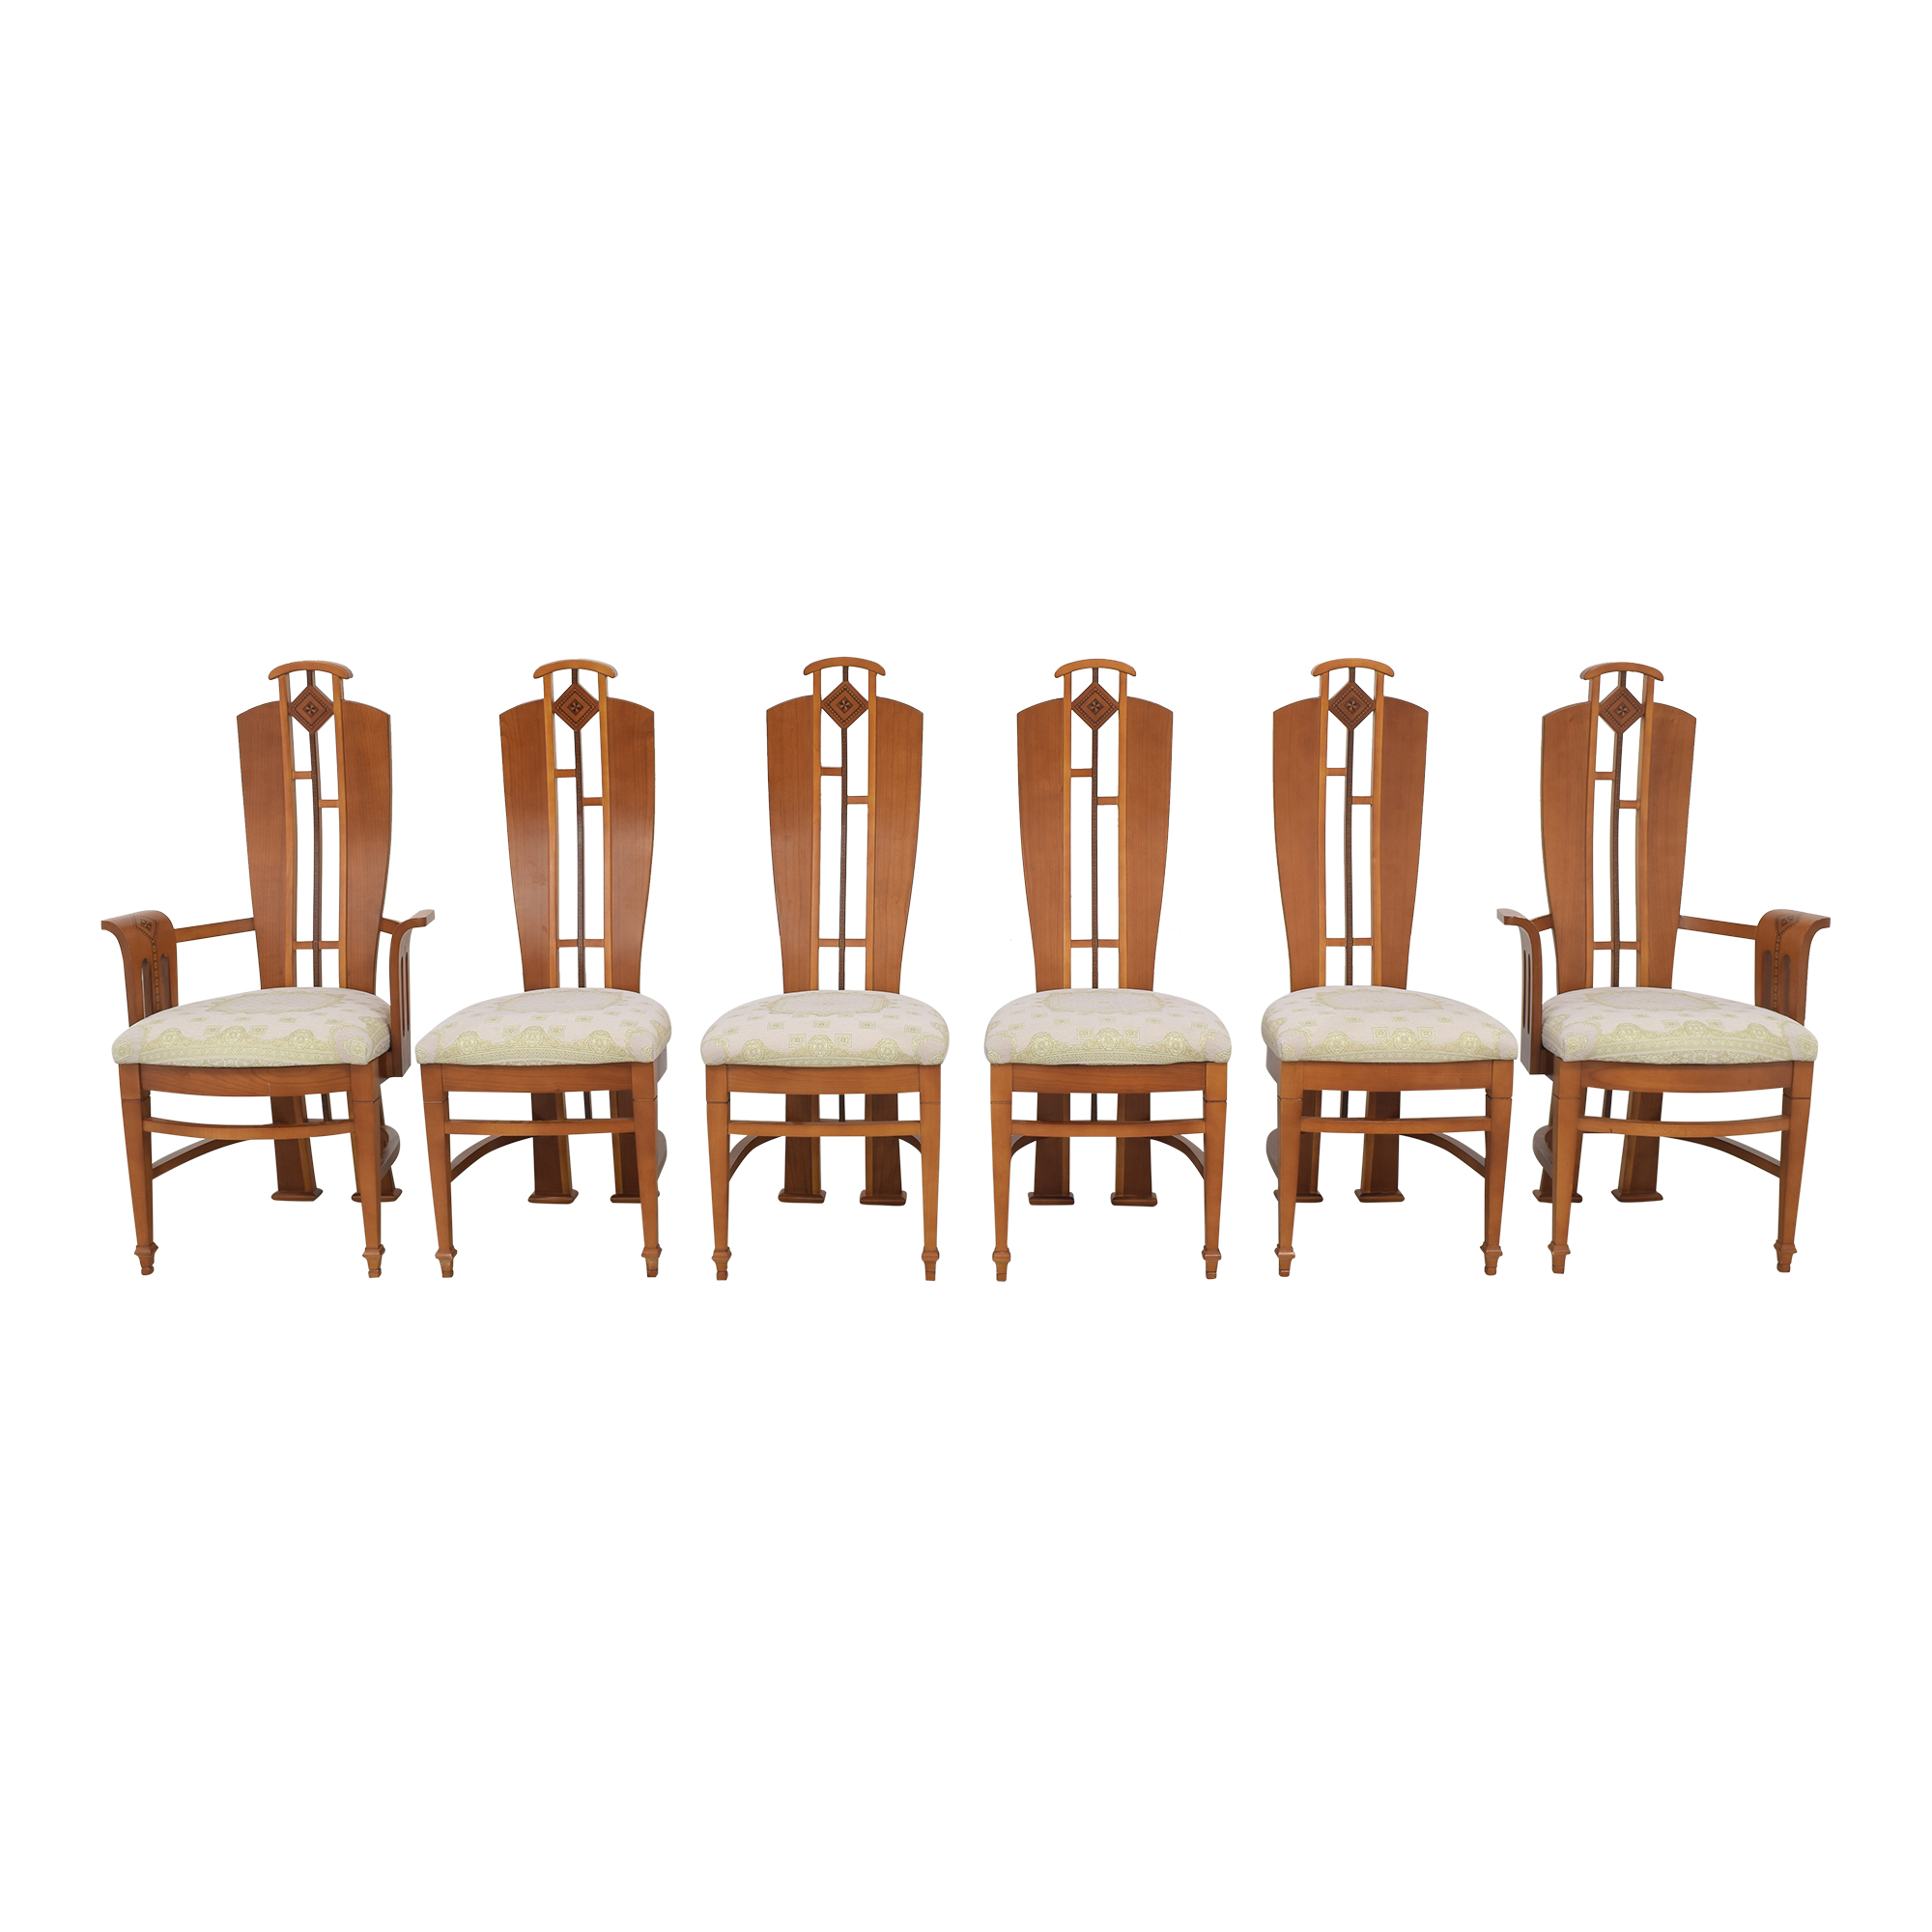 World Of Decor Dining Chairs brown & beige